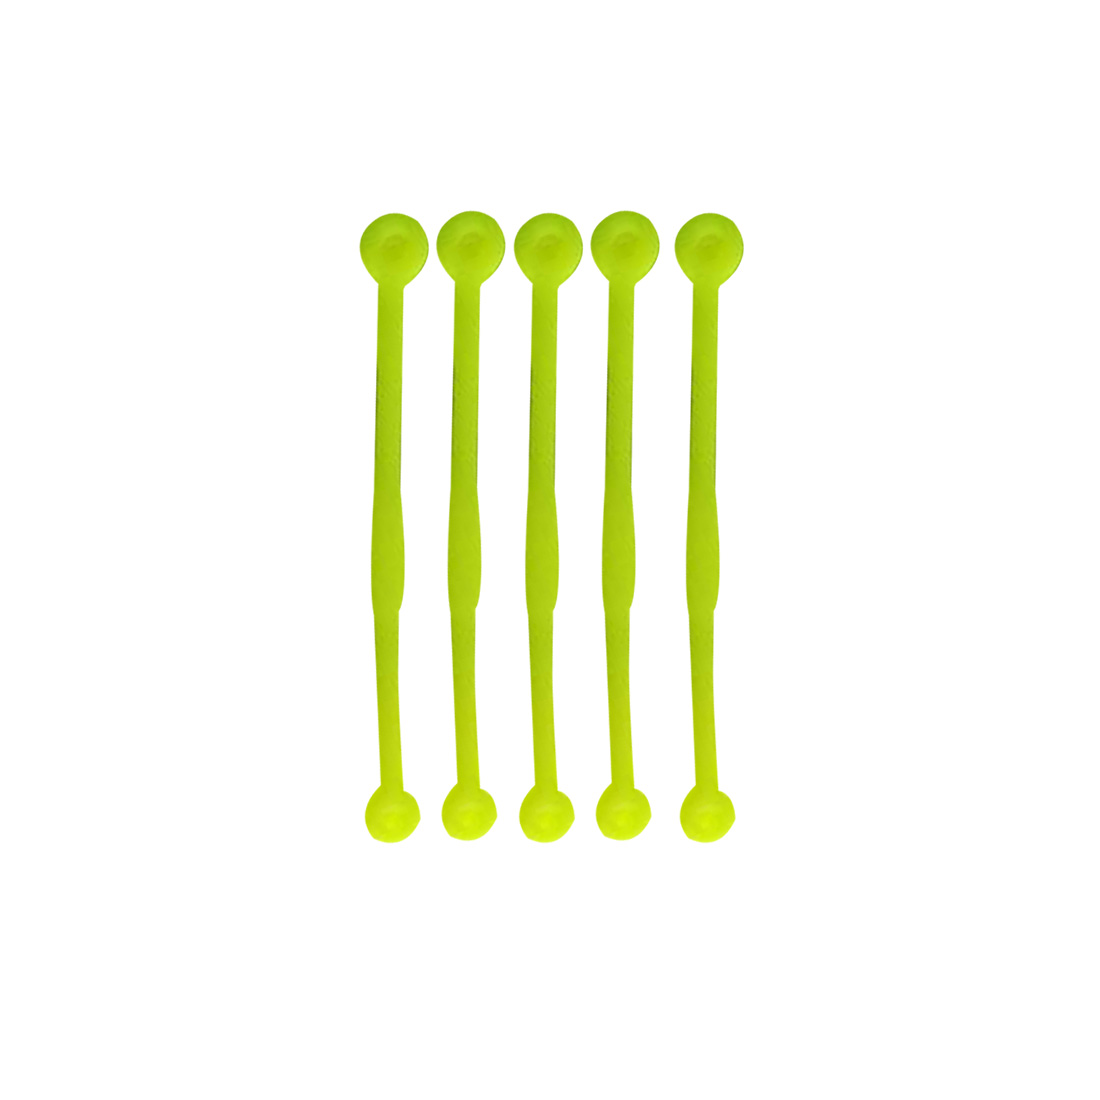 5pcs Silicone Reduce Vibration Shock Absorber Toys Raqueta Durable Squash Long Hook String Accessories Tennis Racket Damper